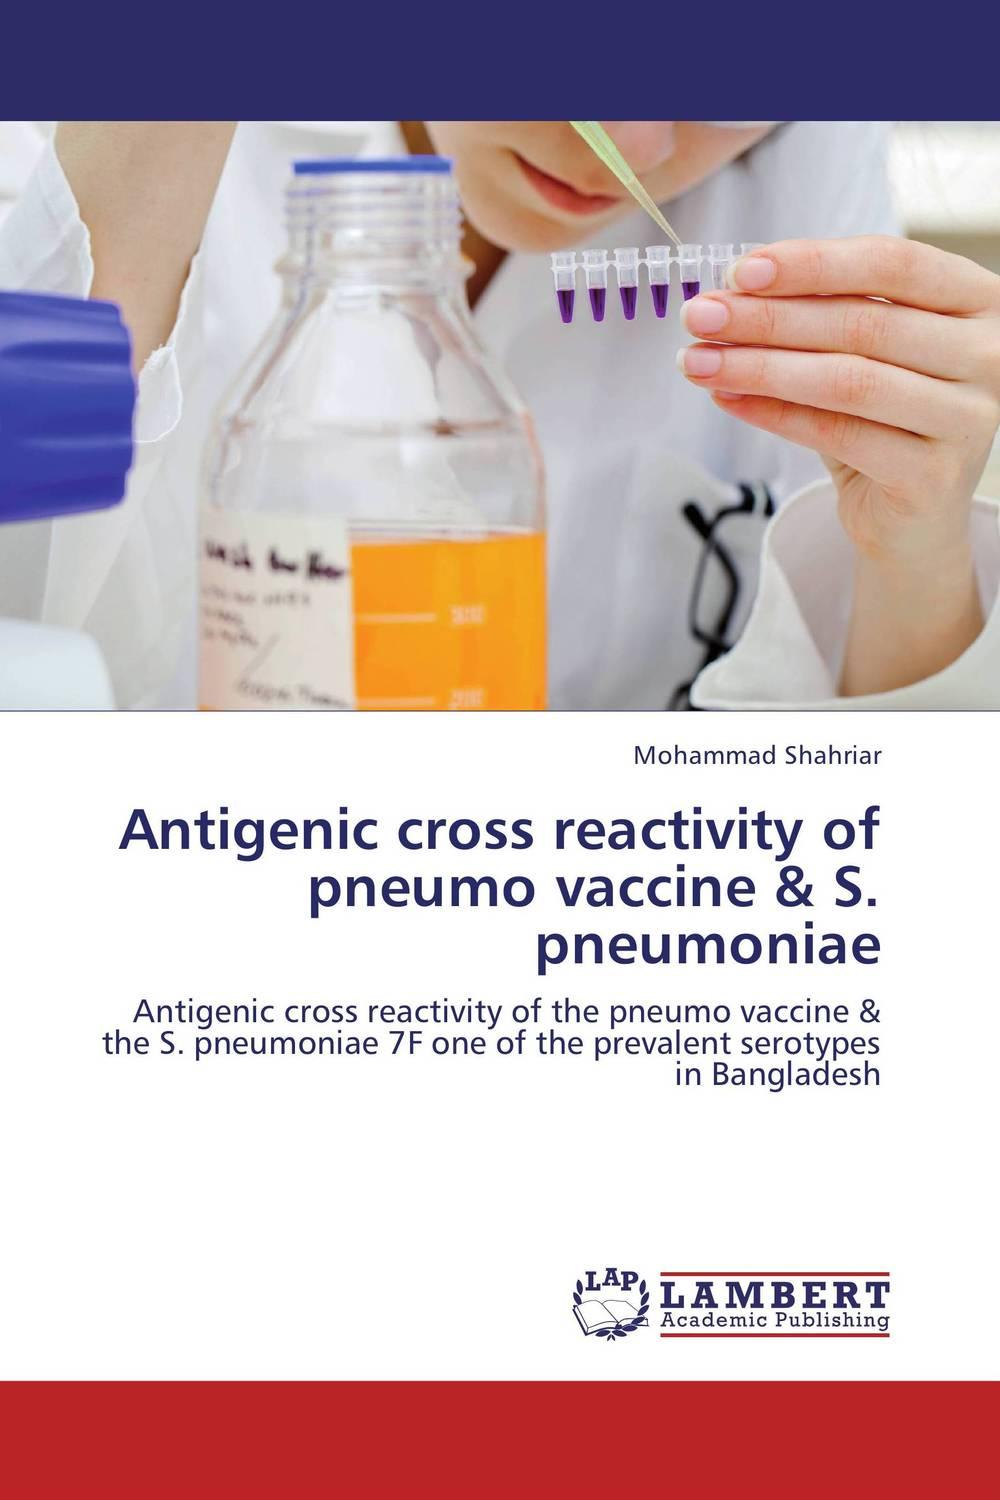 Antigenic cross reactivity of pneumo vaccine & S. pneumoniae